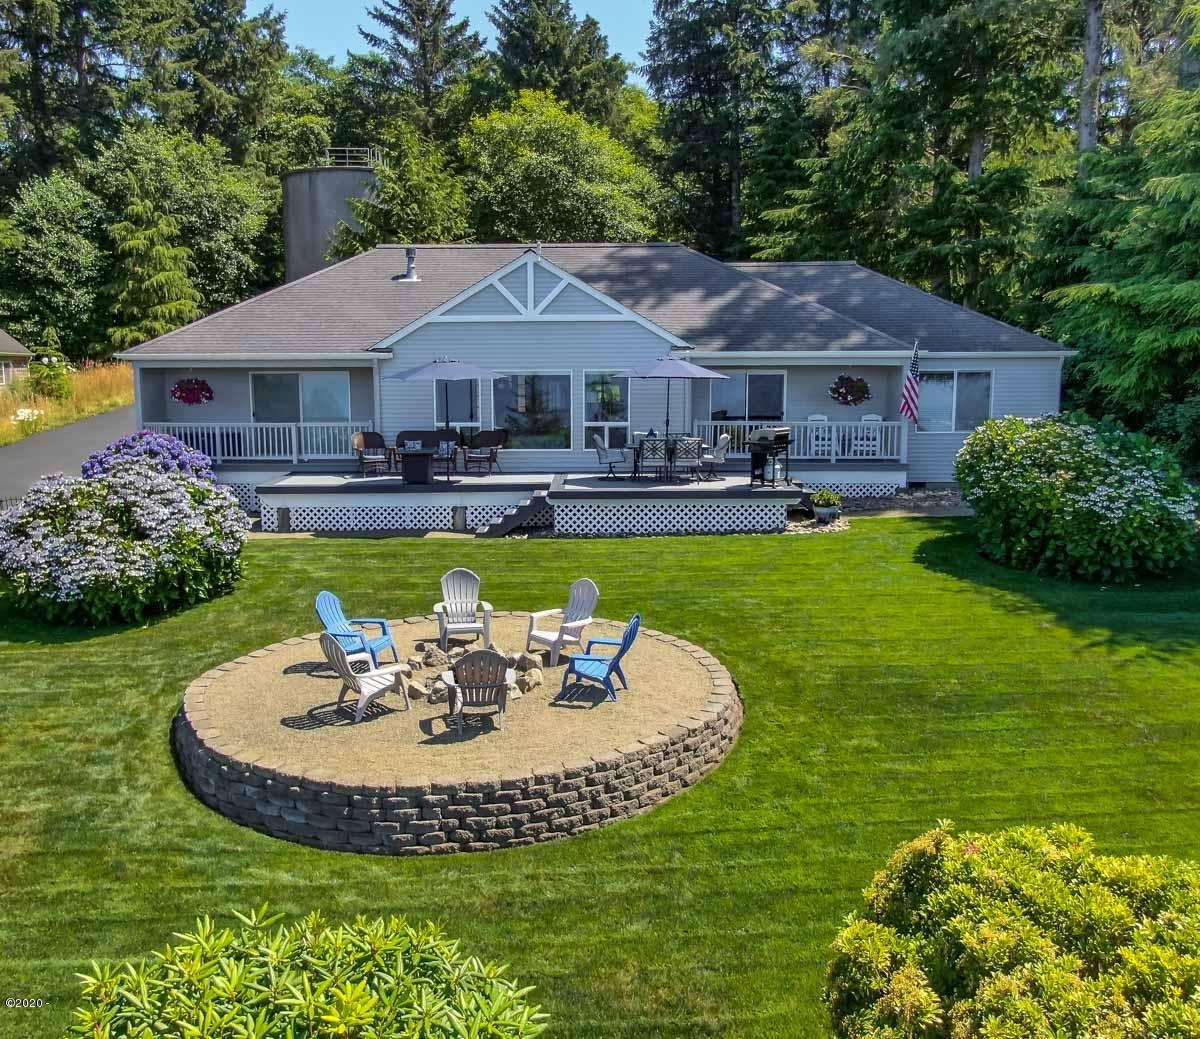 6565 Pacific Overlook Dr, Neskowin, OR 97149 - EXTRAORDINARY SINGLE LEVEL